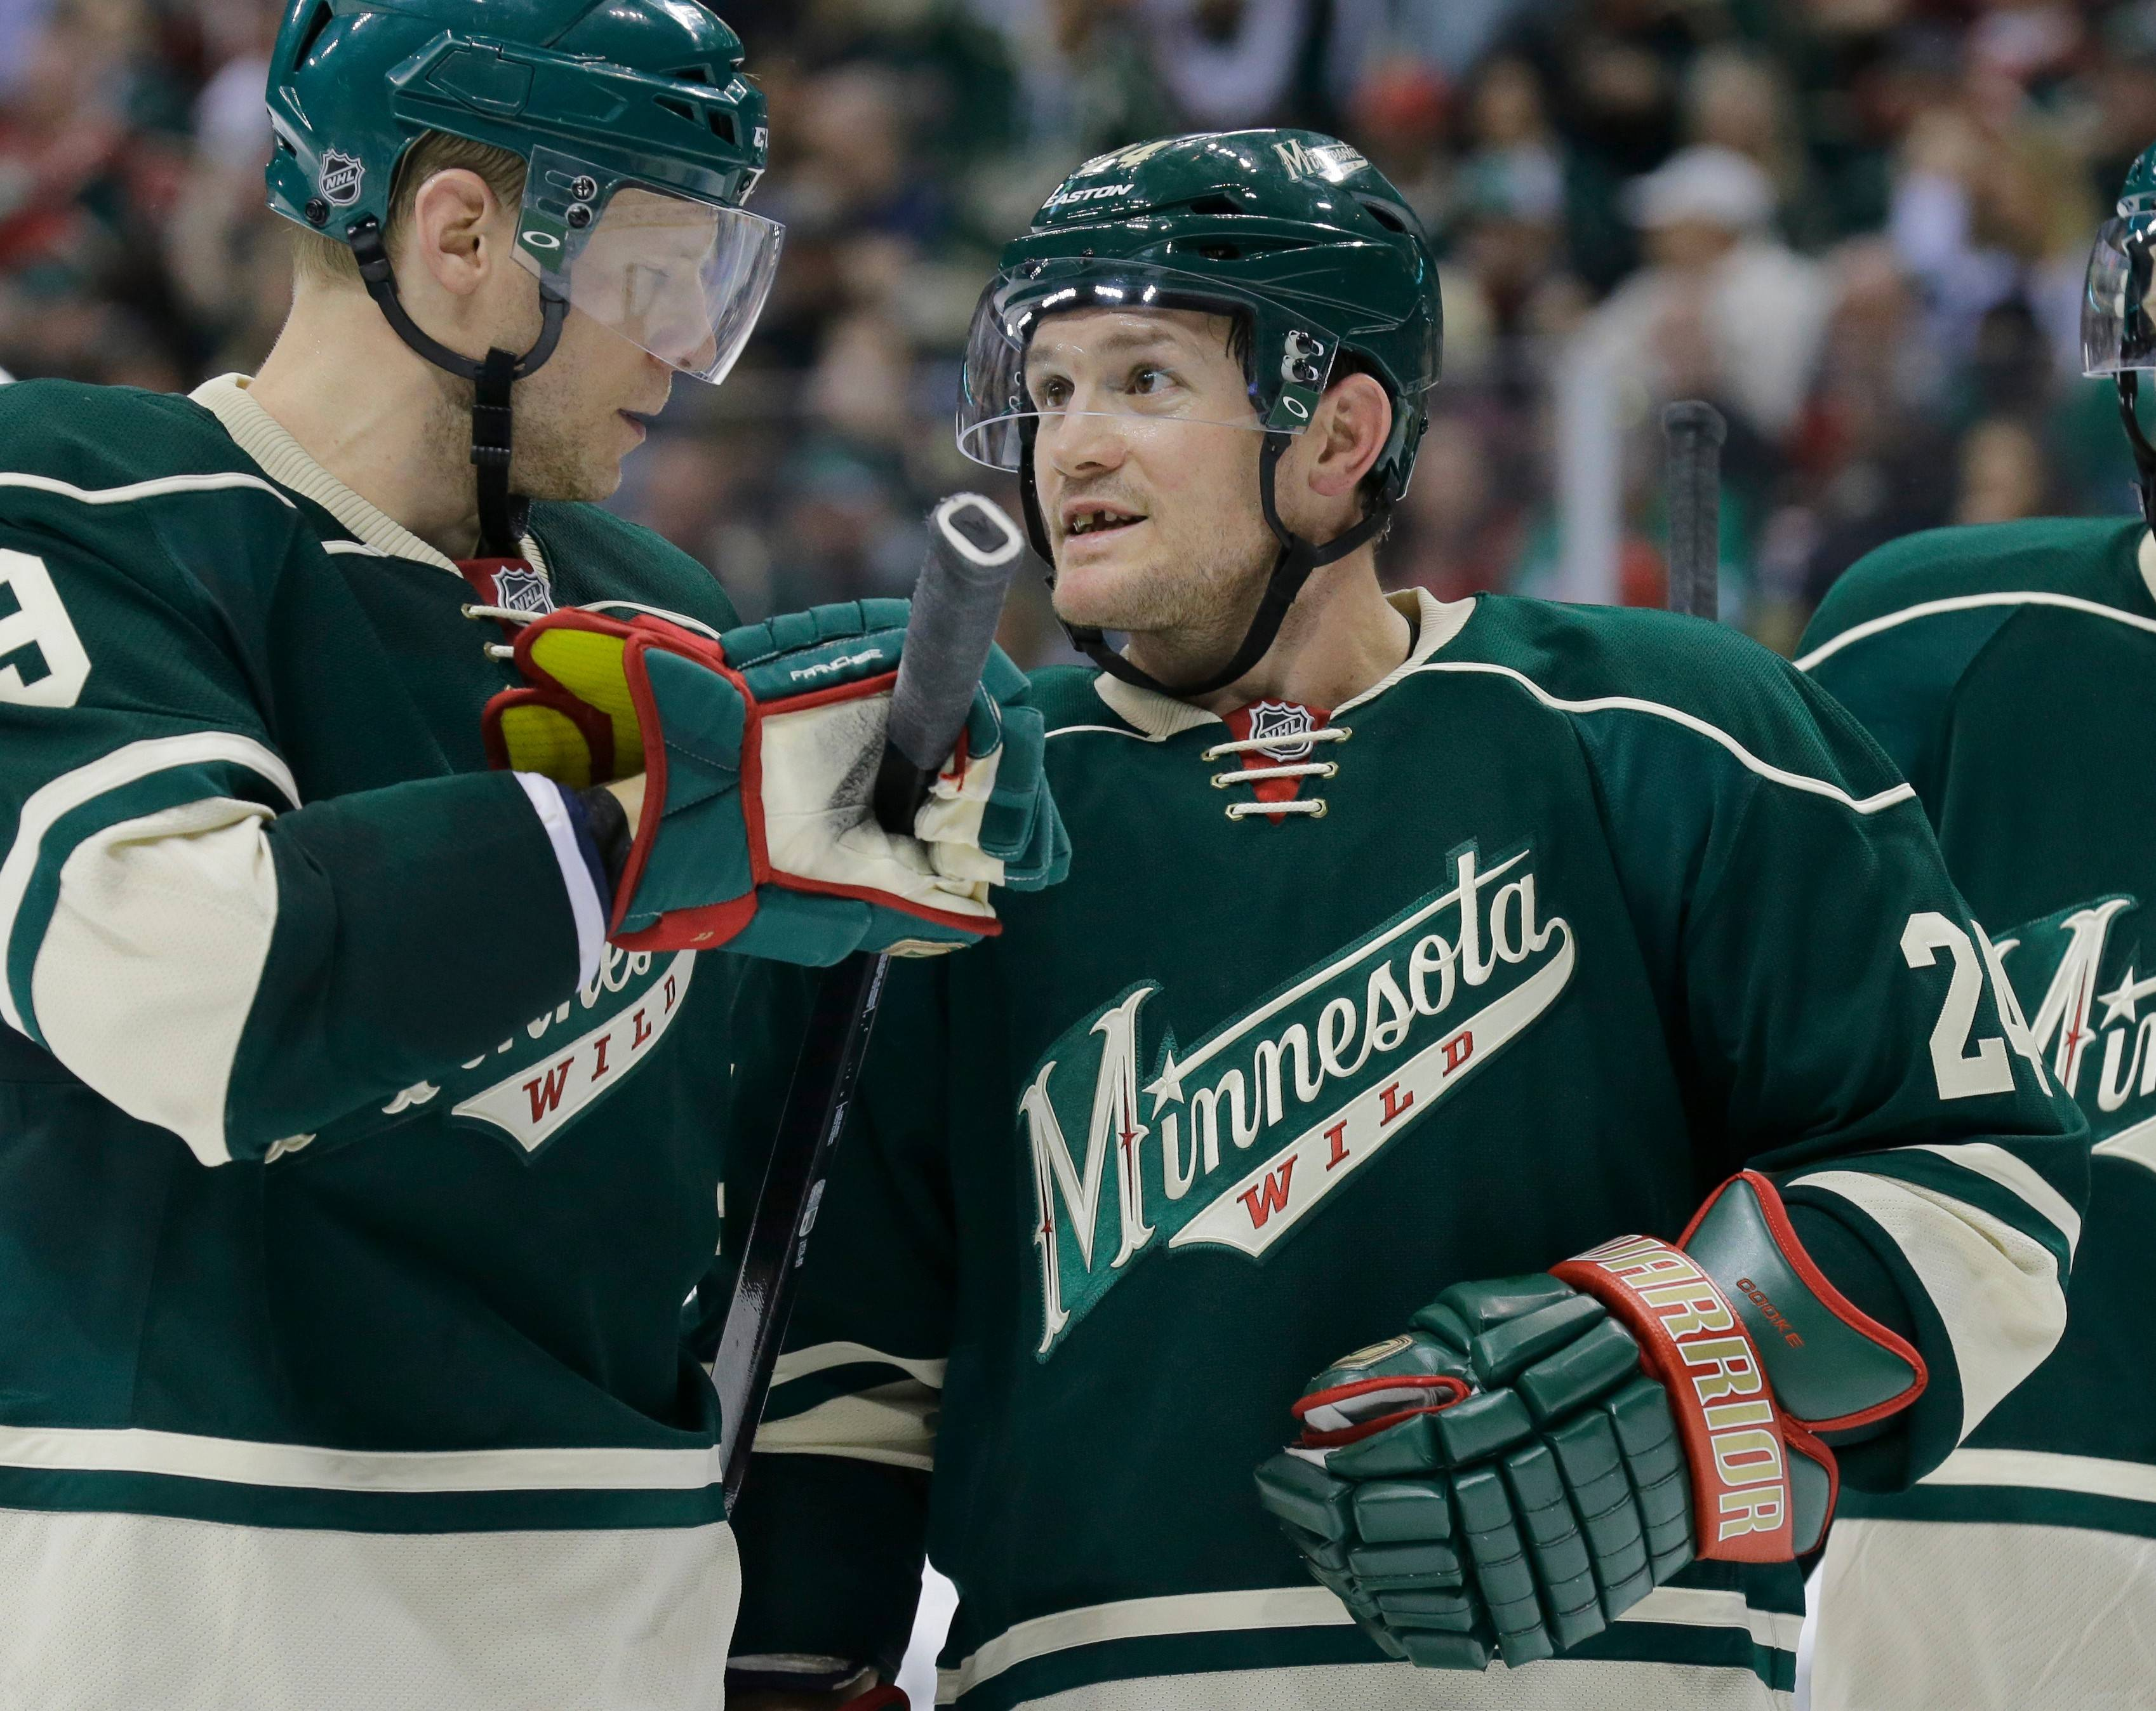 Now Blackhawks have to beware of Wild's Cooke